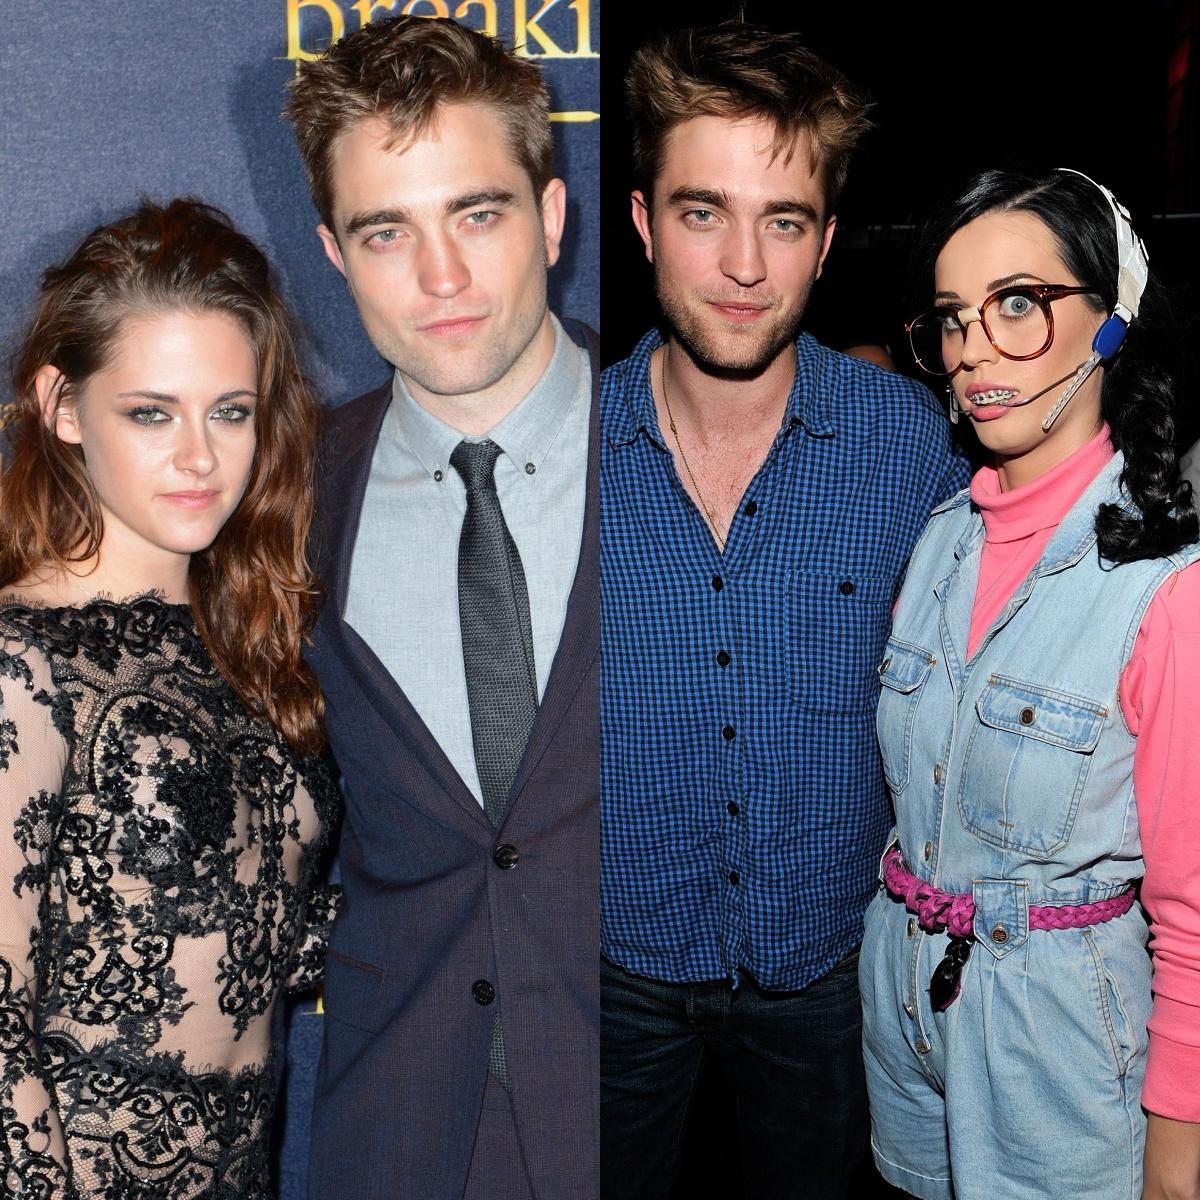 Robert Pattinson's dating timeline